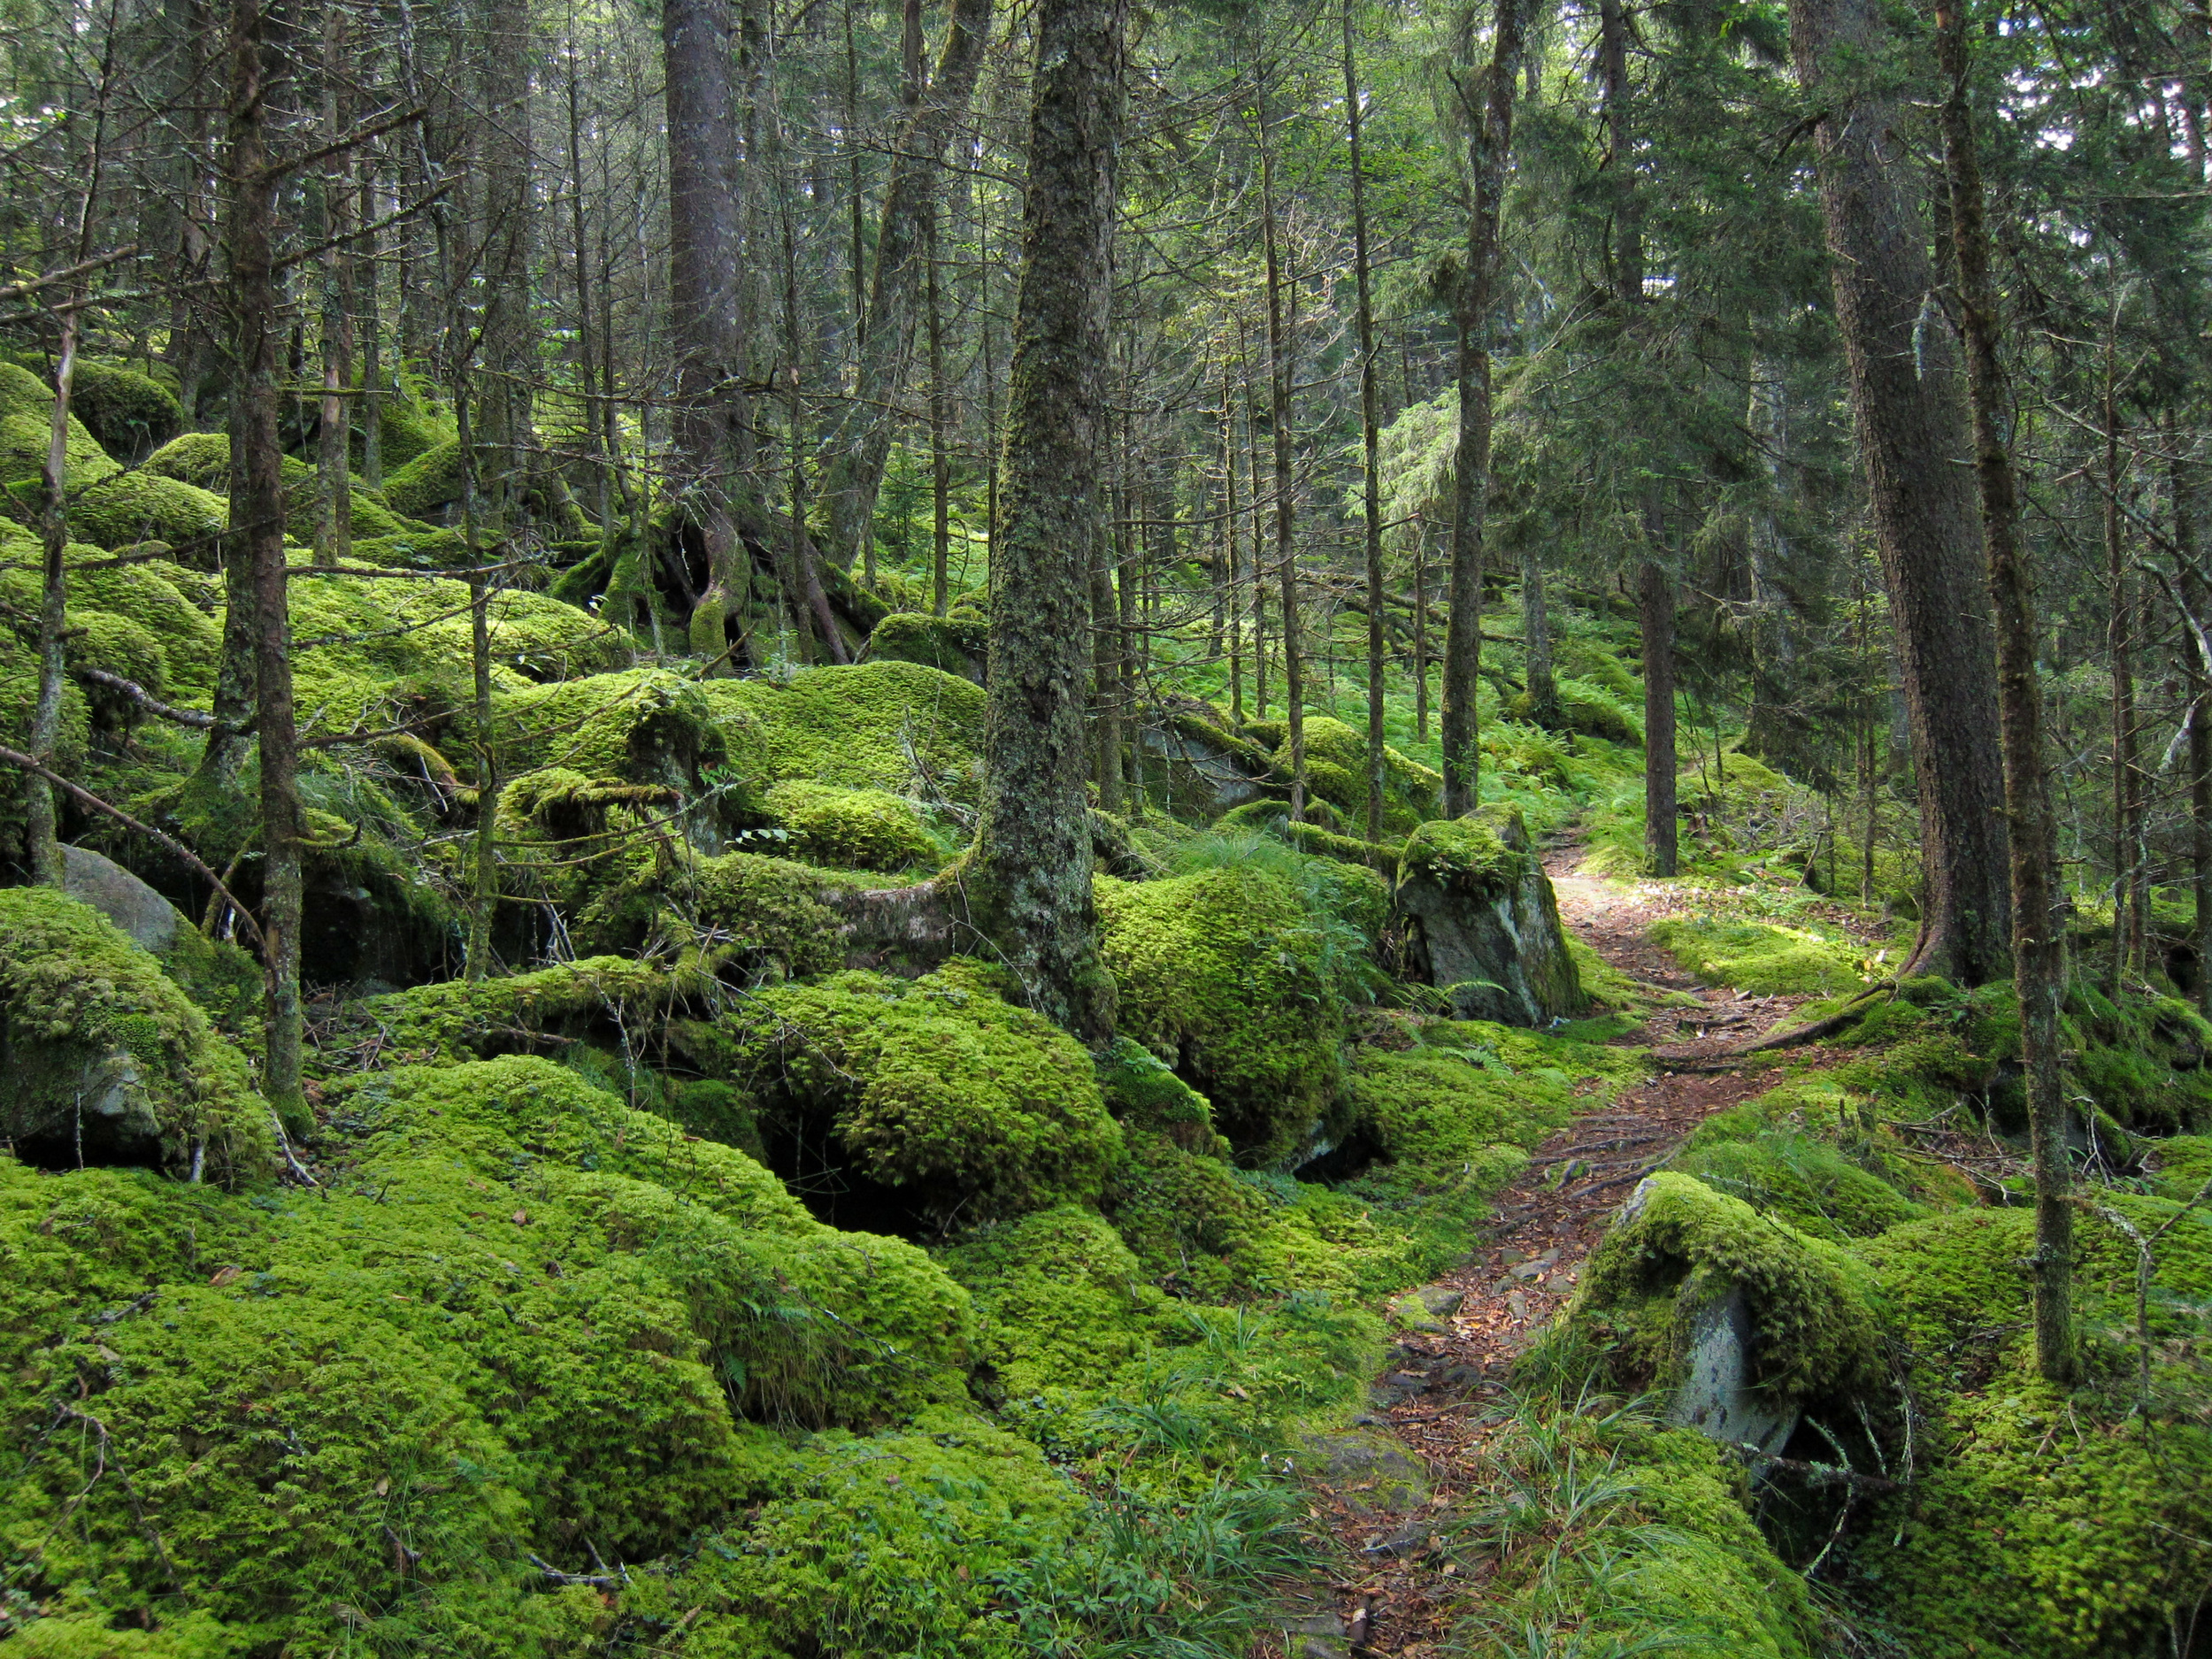 Forest_on_Baxter_Creek_Trail_in_Great_Smoky_Mountains_National_Park.jpg